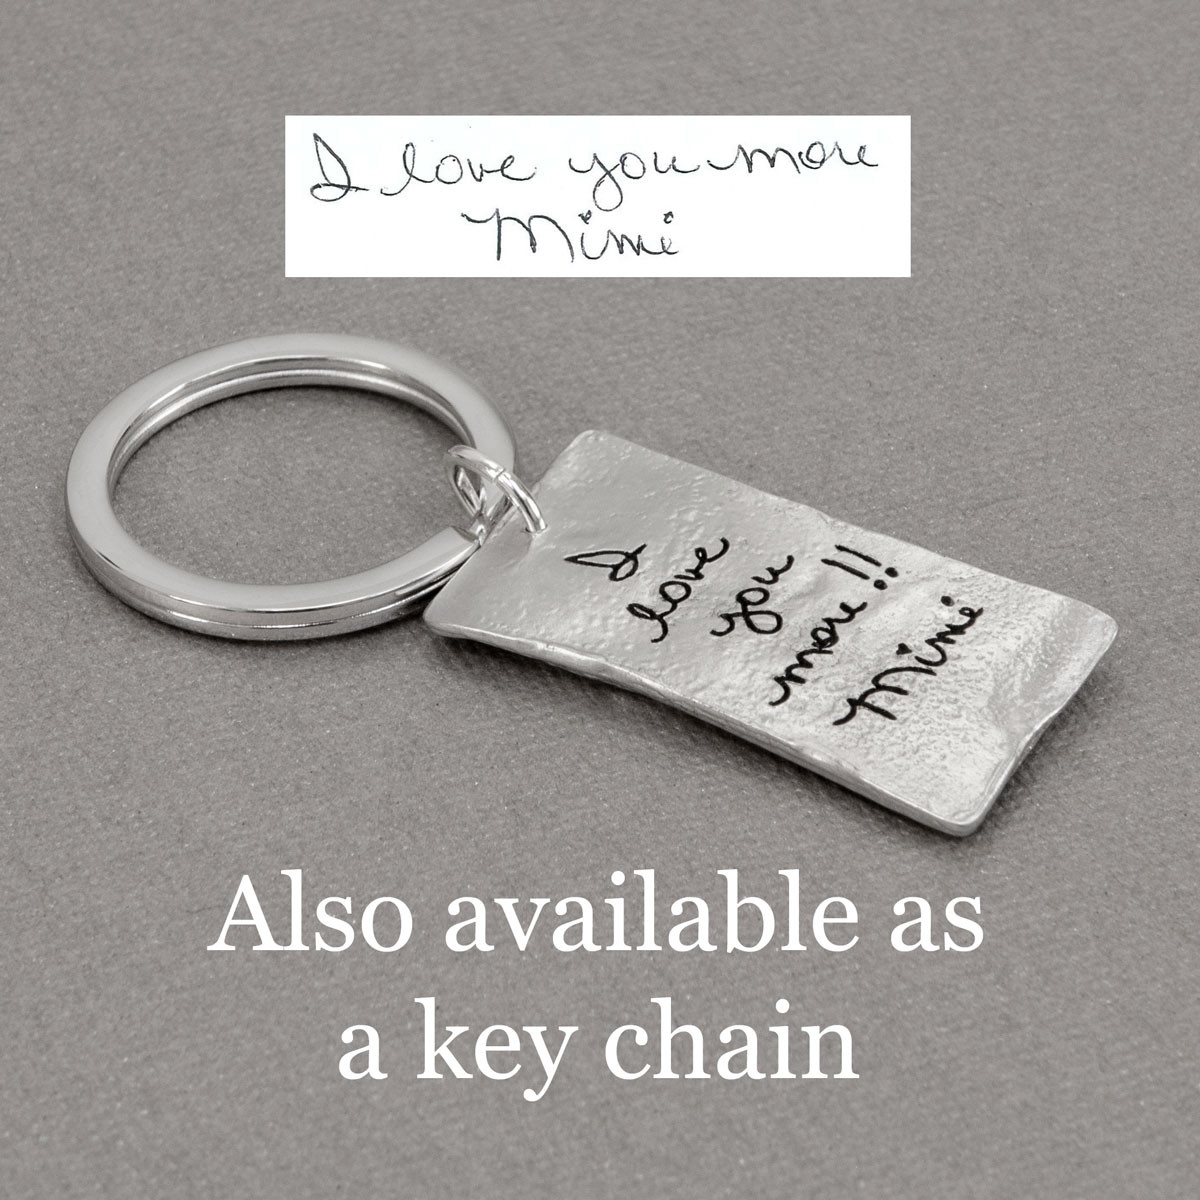 Your handwriting on a fine pewter pocket charm with a raised heart, shown as a key chain